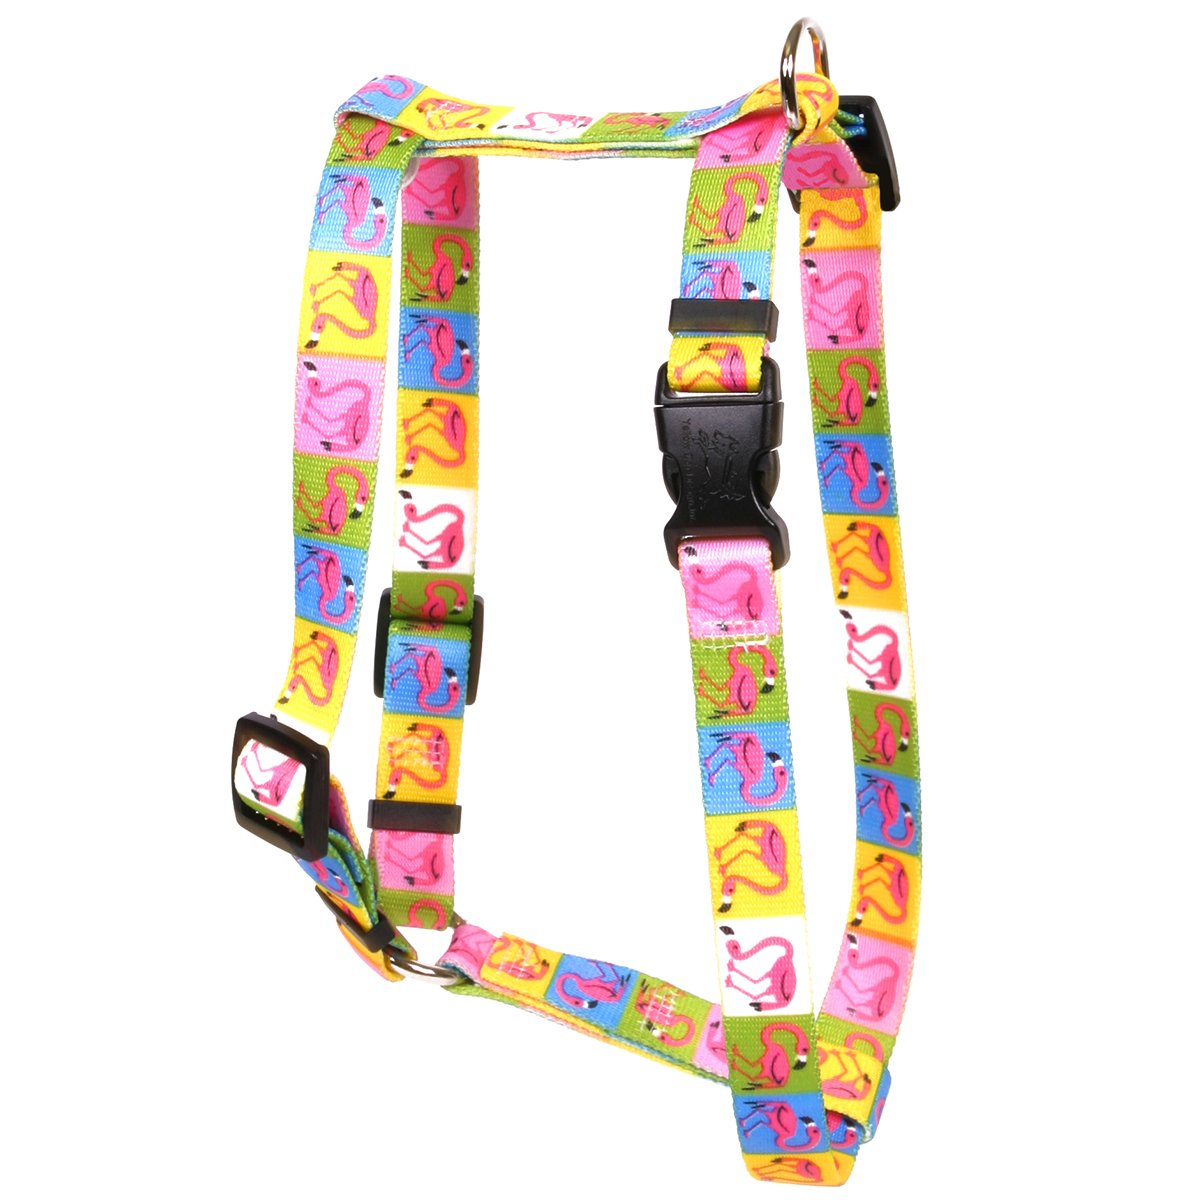 Yellow Dog Design Pink Flamingo Roman Style H Dog Harness, Small/Medium-3/4 Wide fits Chest of 14 to 20'' by Yellow Dog Design